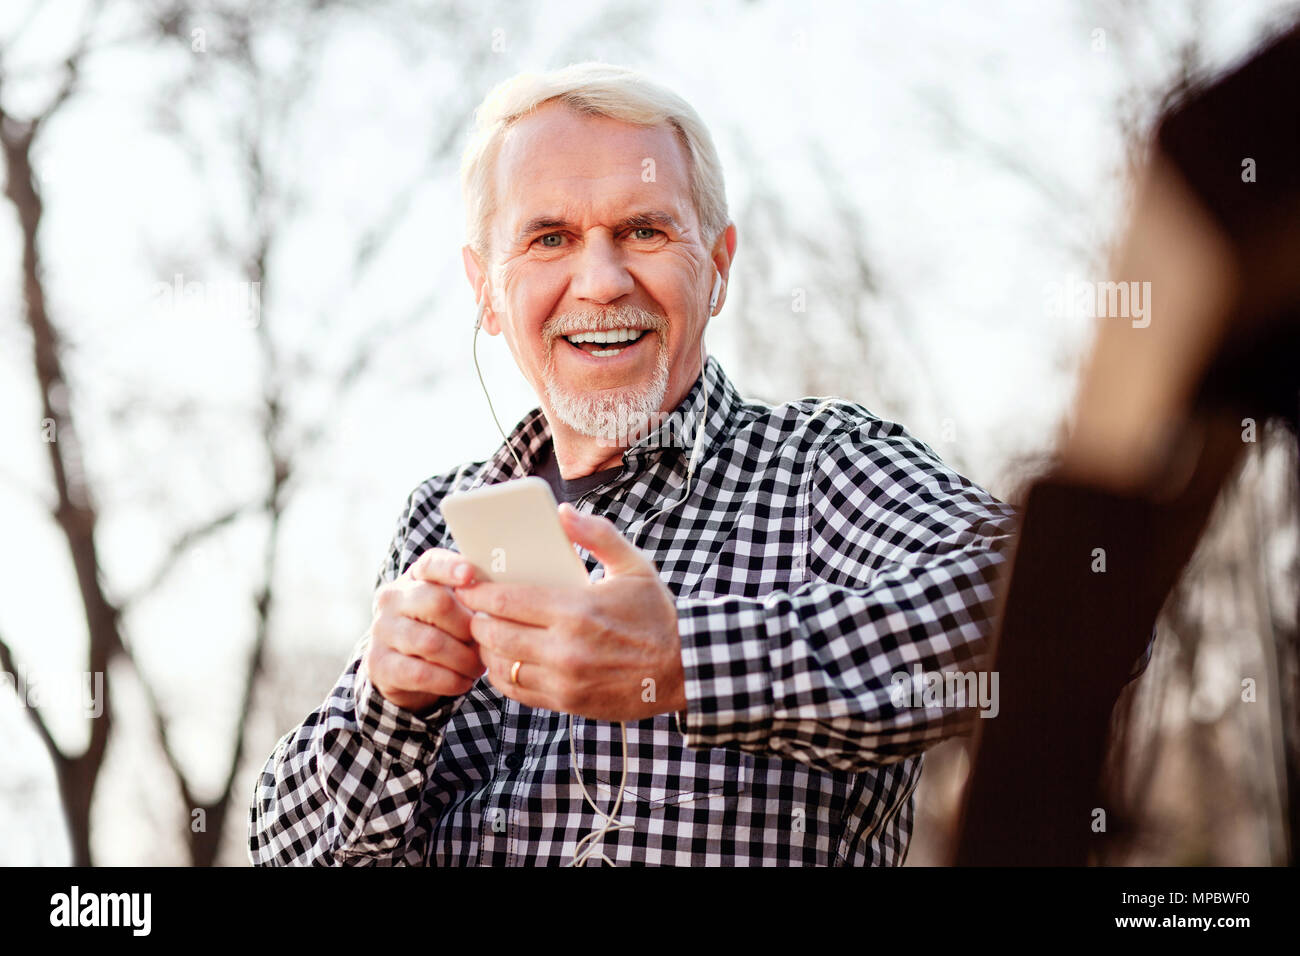 Joyful senior man picking up playlist - Stock Image